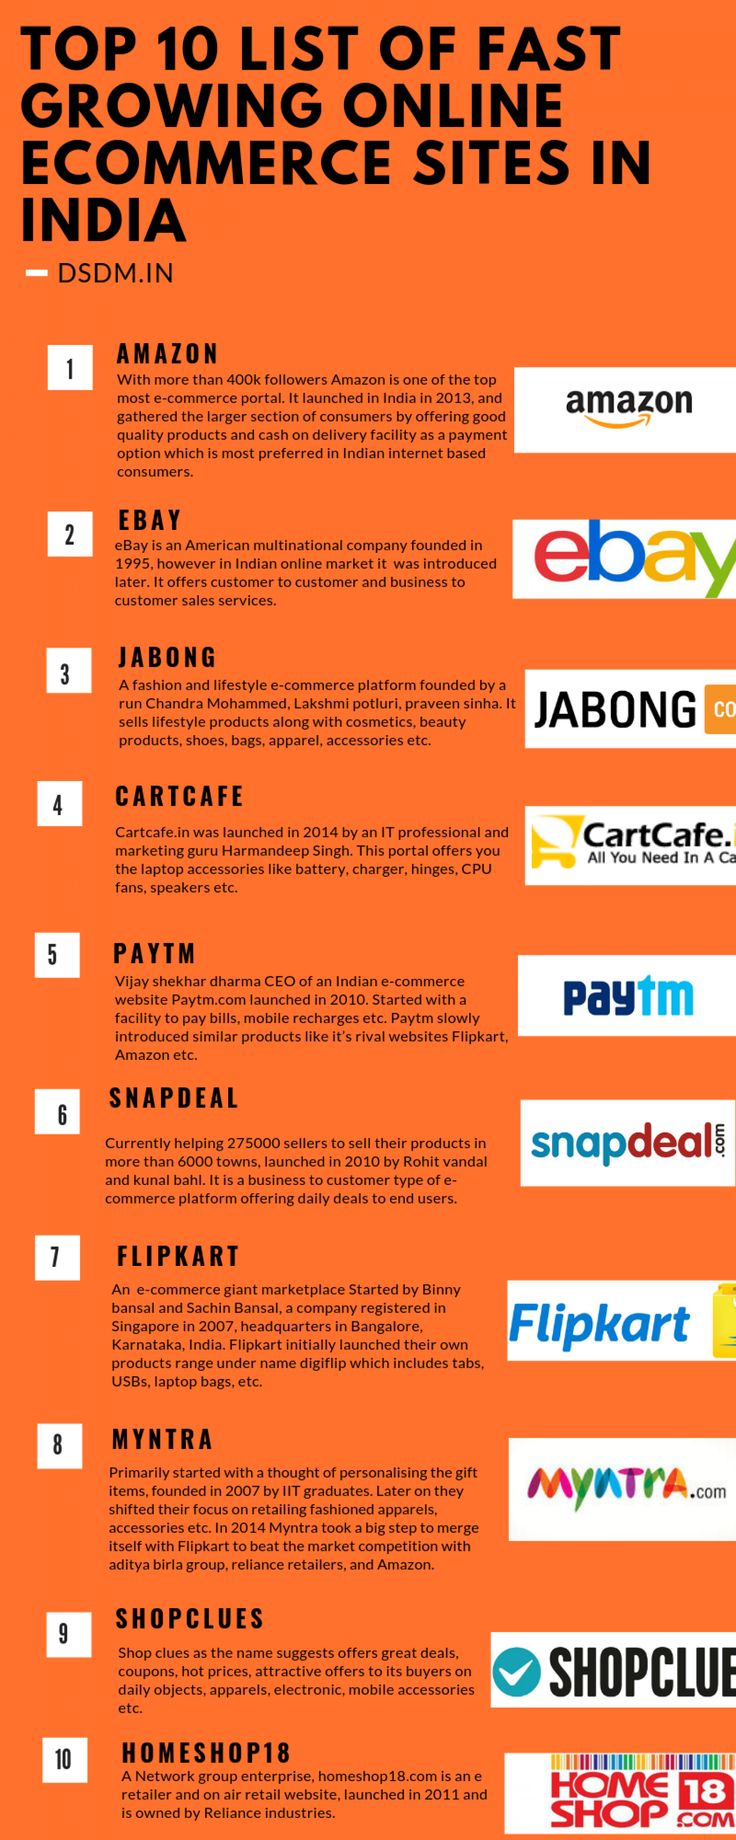 Top 10 Sites in India Infographic